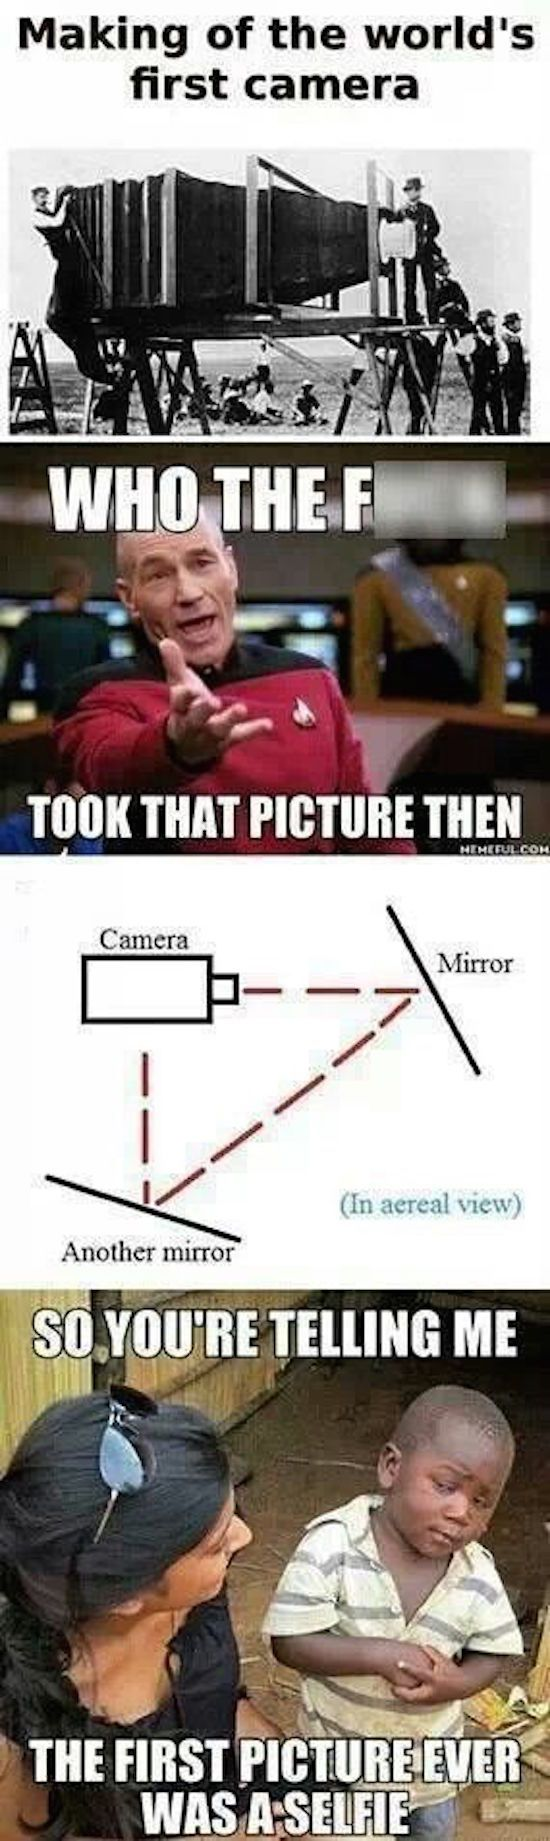 Or they could have made a second camera and used it to take a picture of the first camera. Duh